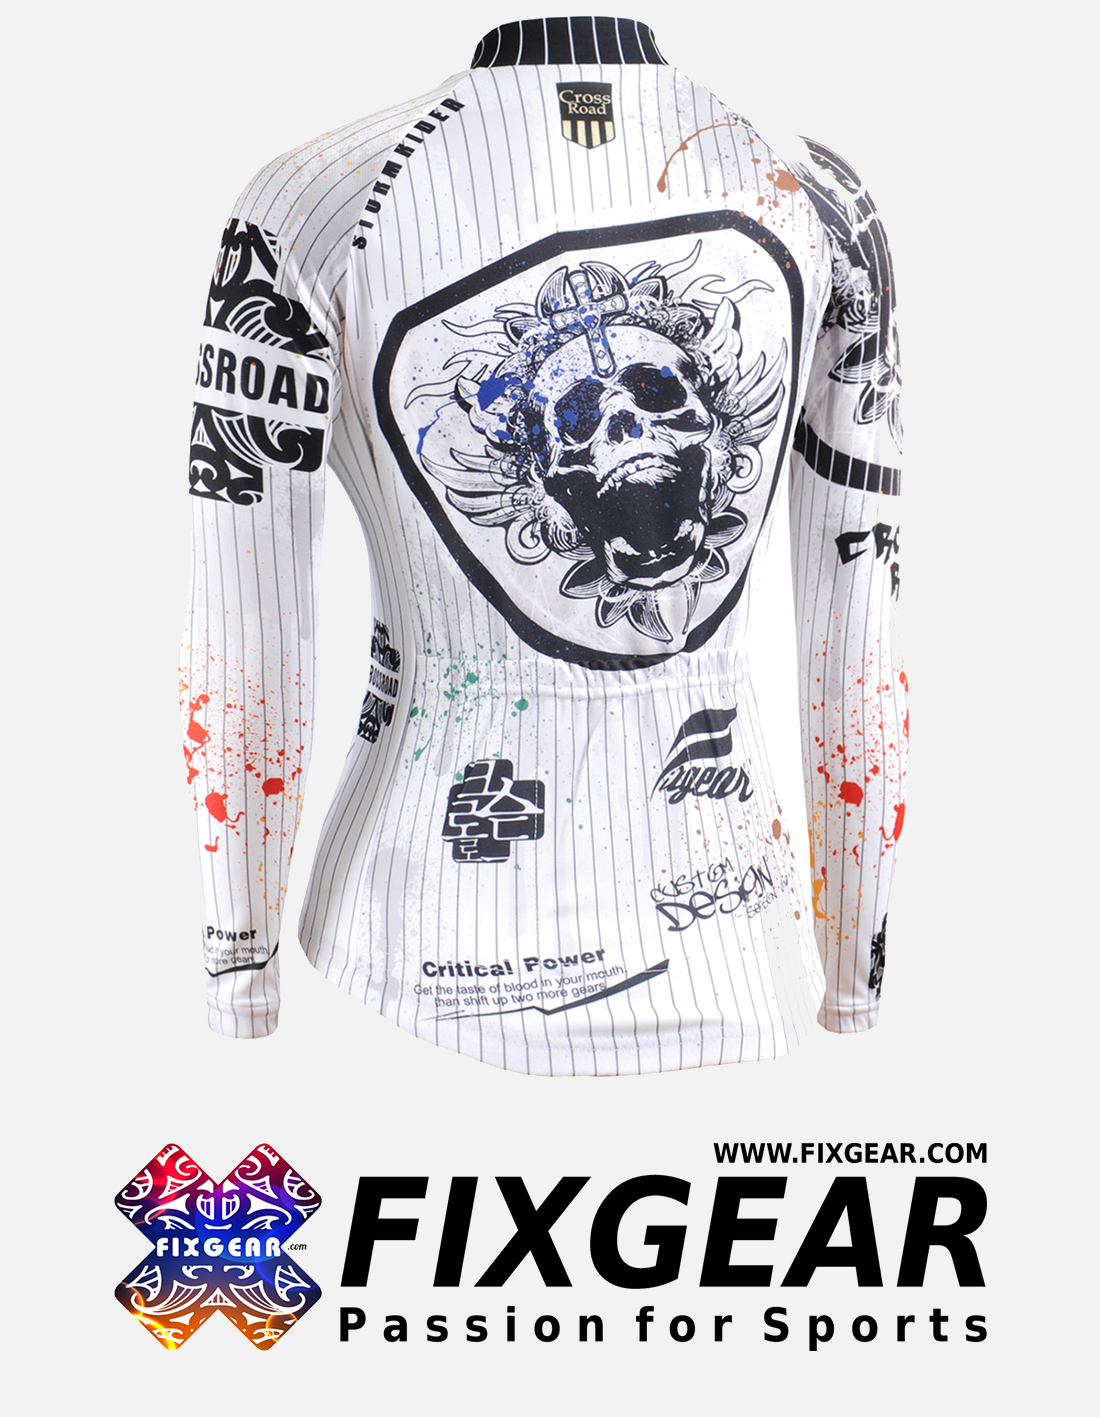 FIXGEAR CS-W901 Women's Long Sleeve Jersey